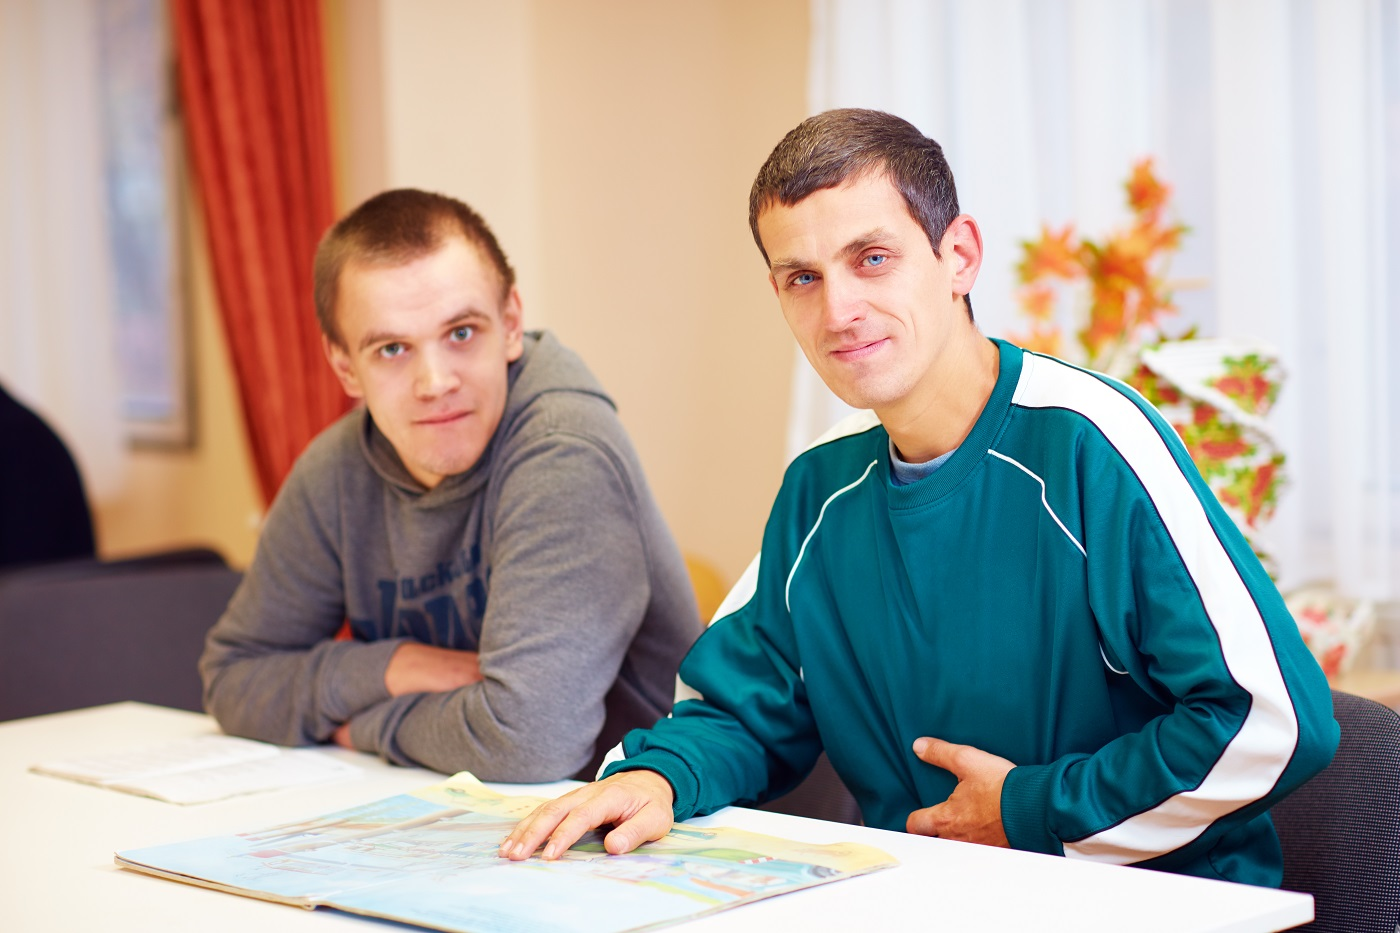 a picture showing two sufferers of autism spectrum disorder